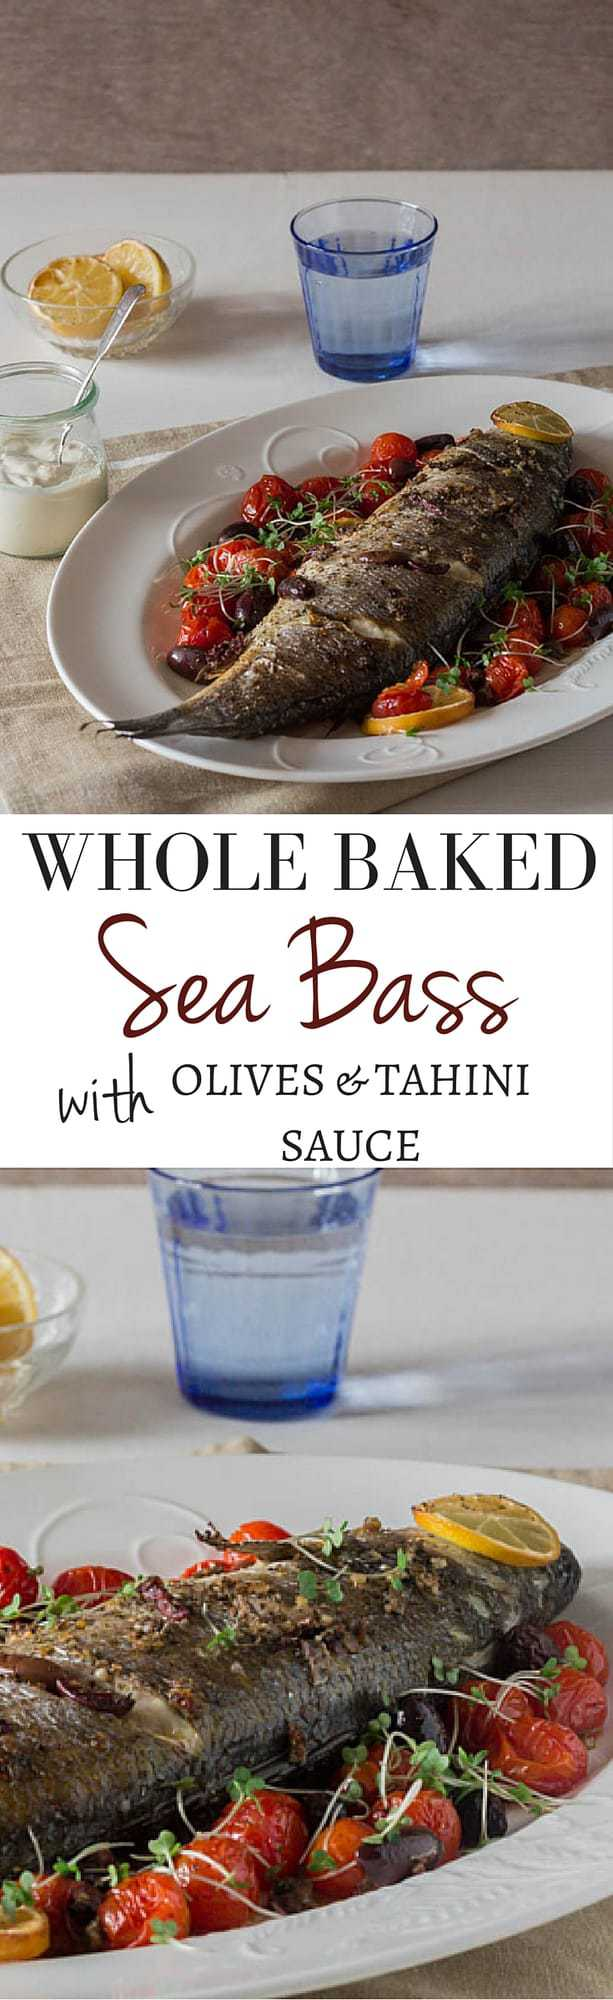 how to cook whole sea bass